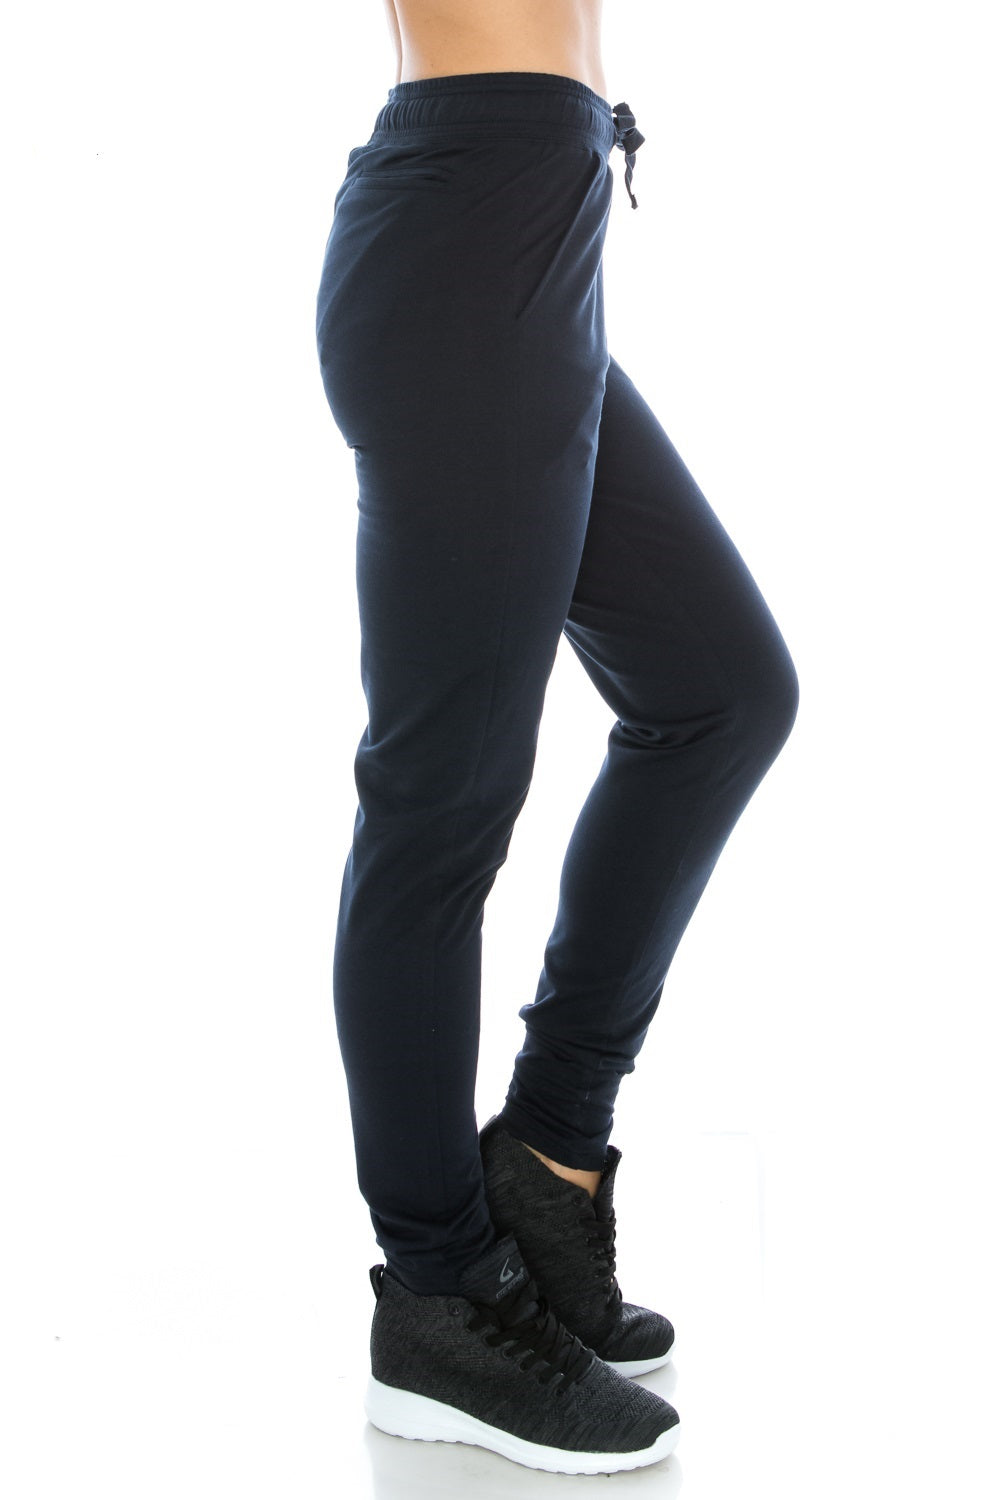 Navy Fitted Unisex Workout Sweatpants - Poplooks